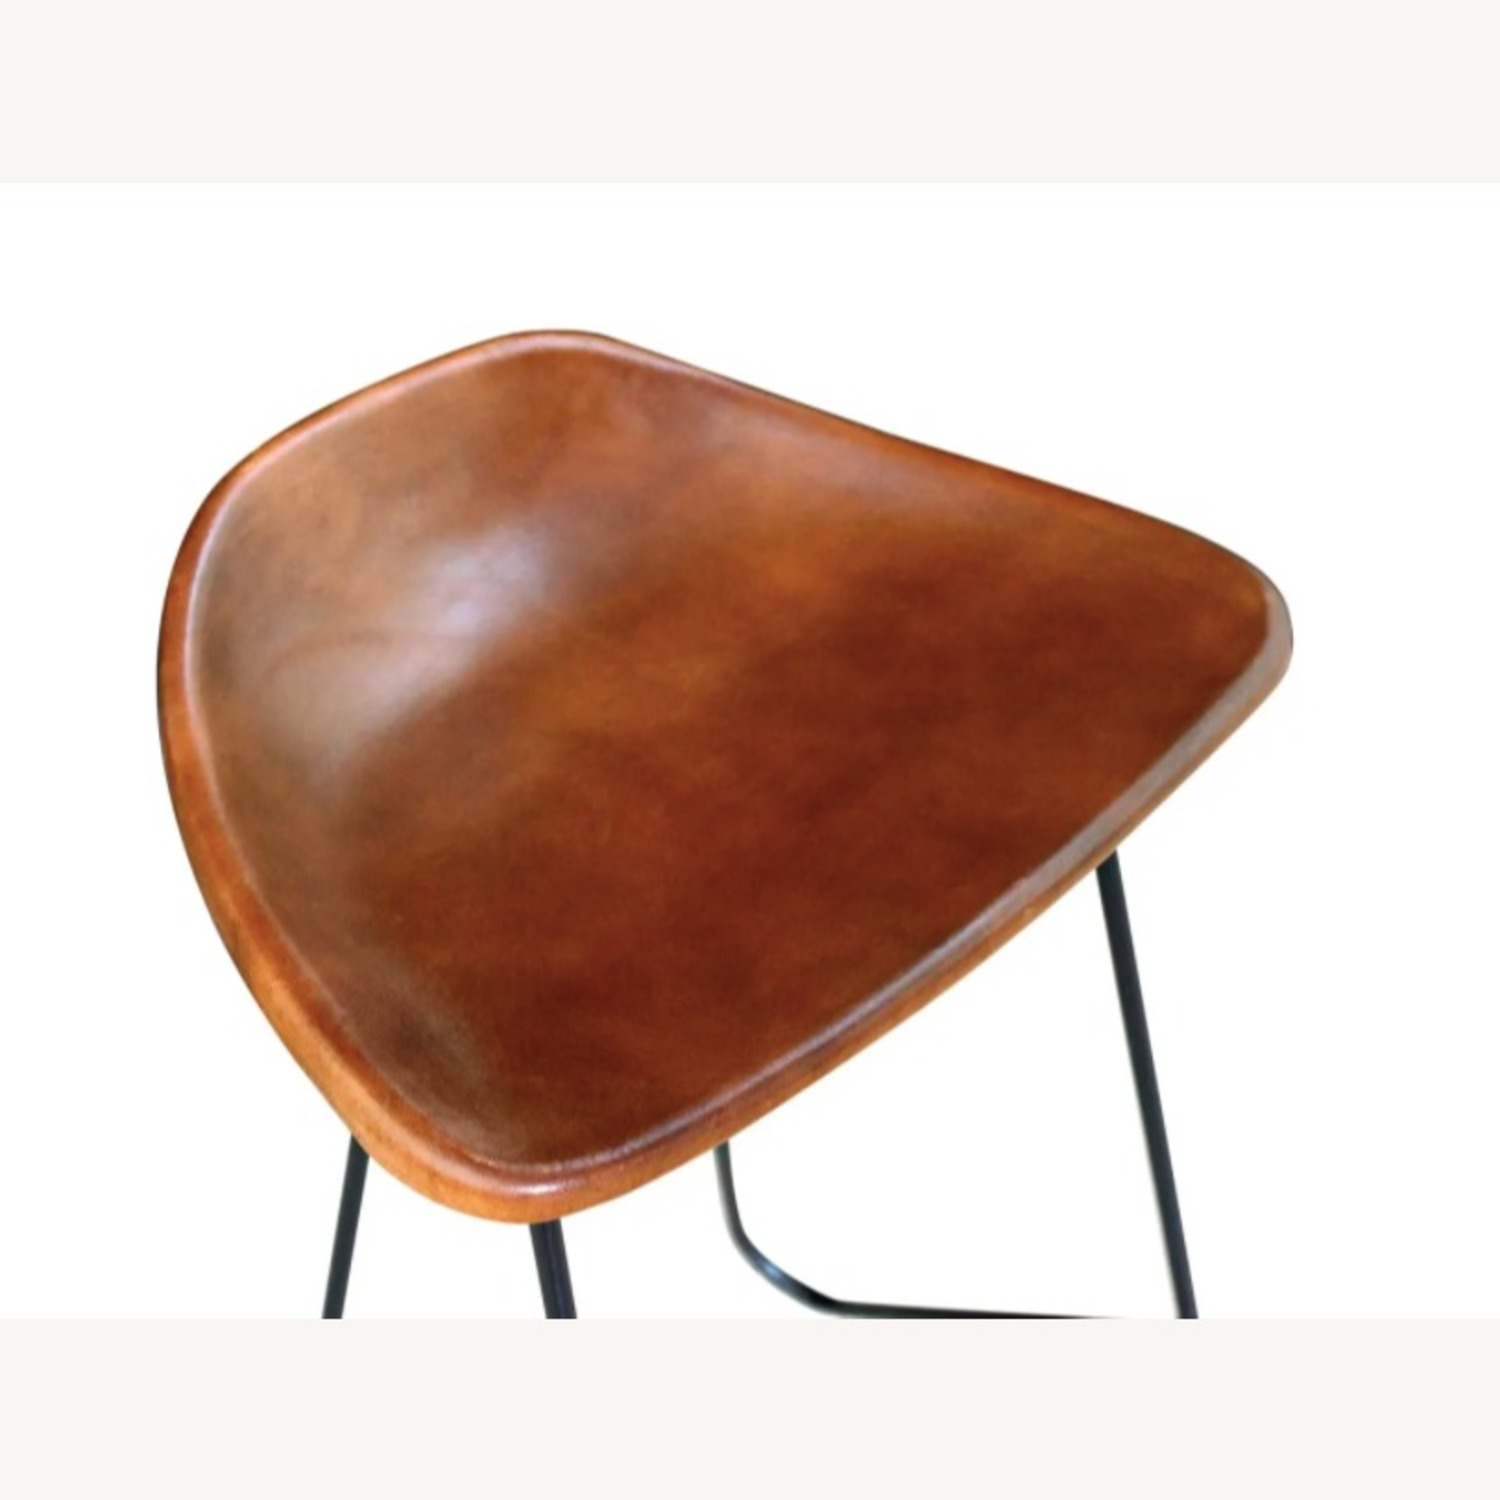 Mid Century Modern Set of 4 Brown Leather Stools - image-3